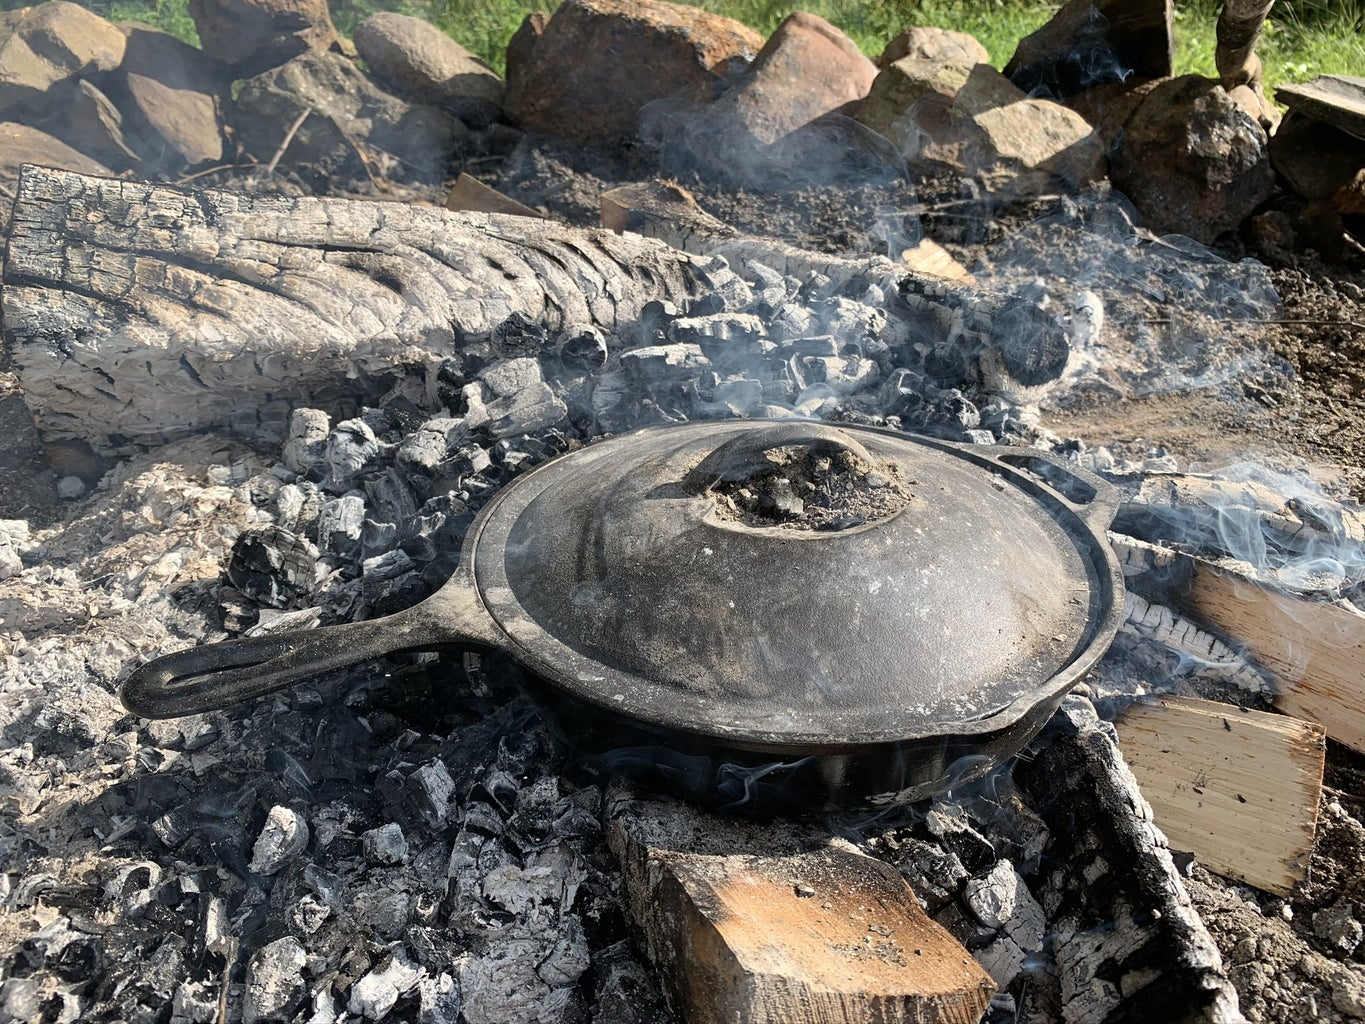 Bake the Pizza on the Fire